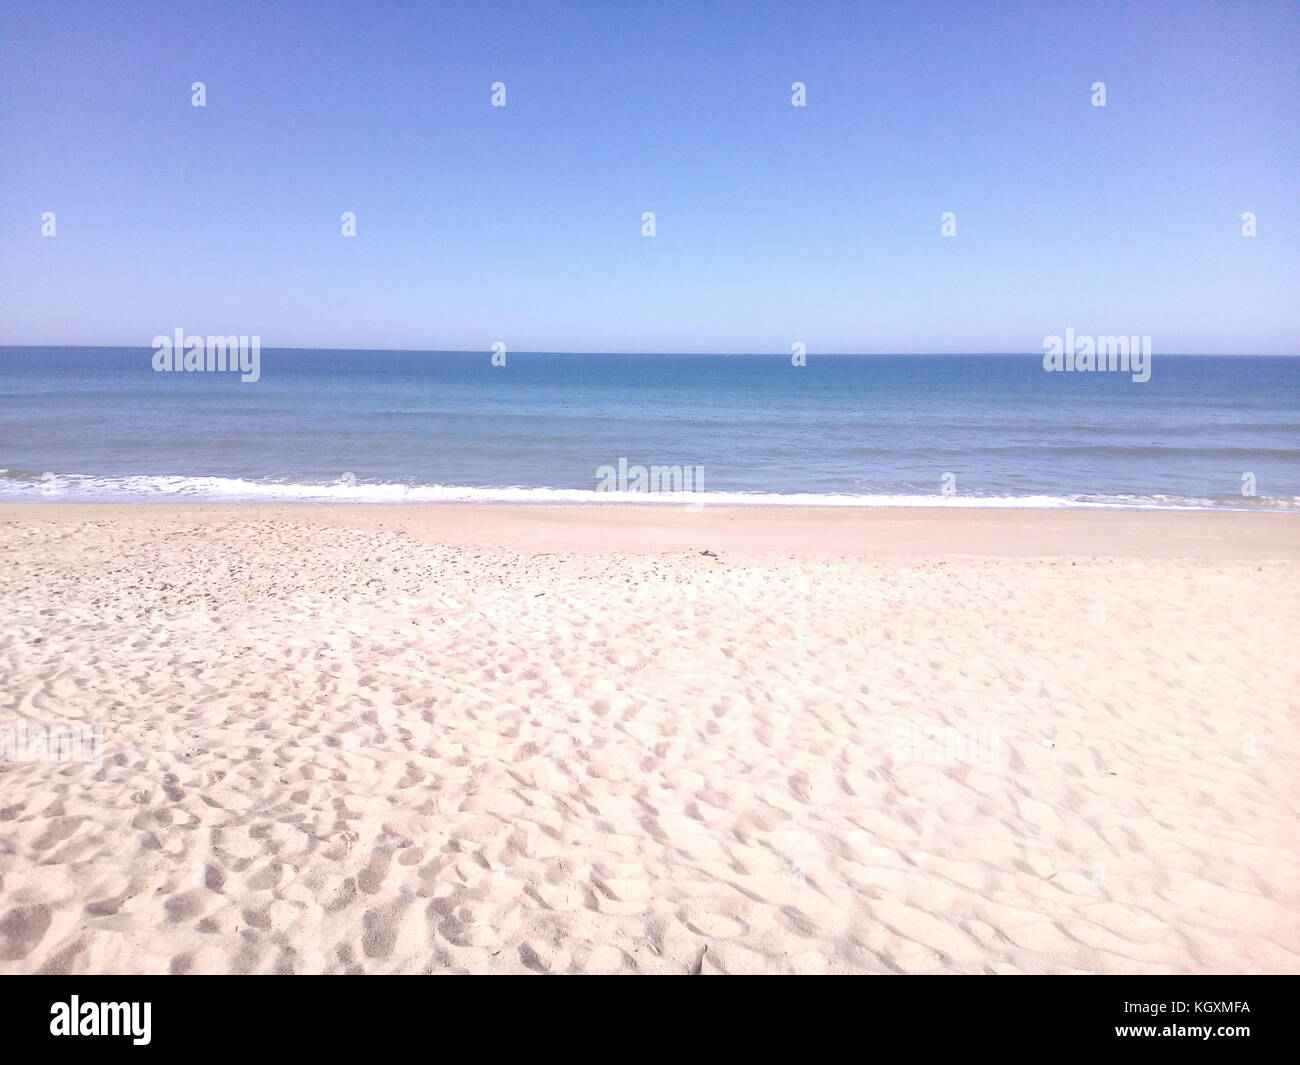 empty beach view with flat ocean on blue sky - Stock Image